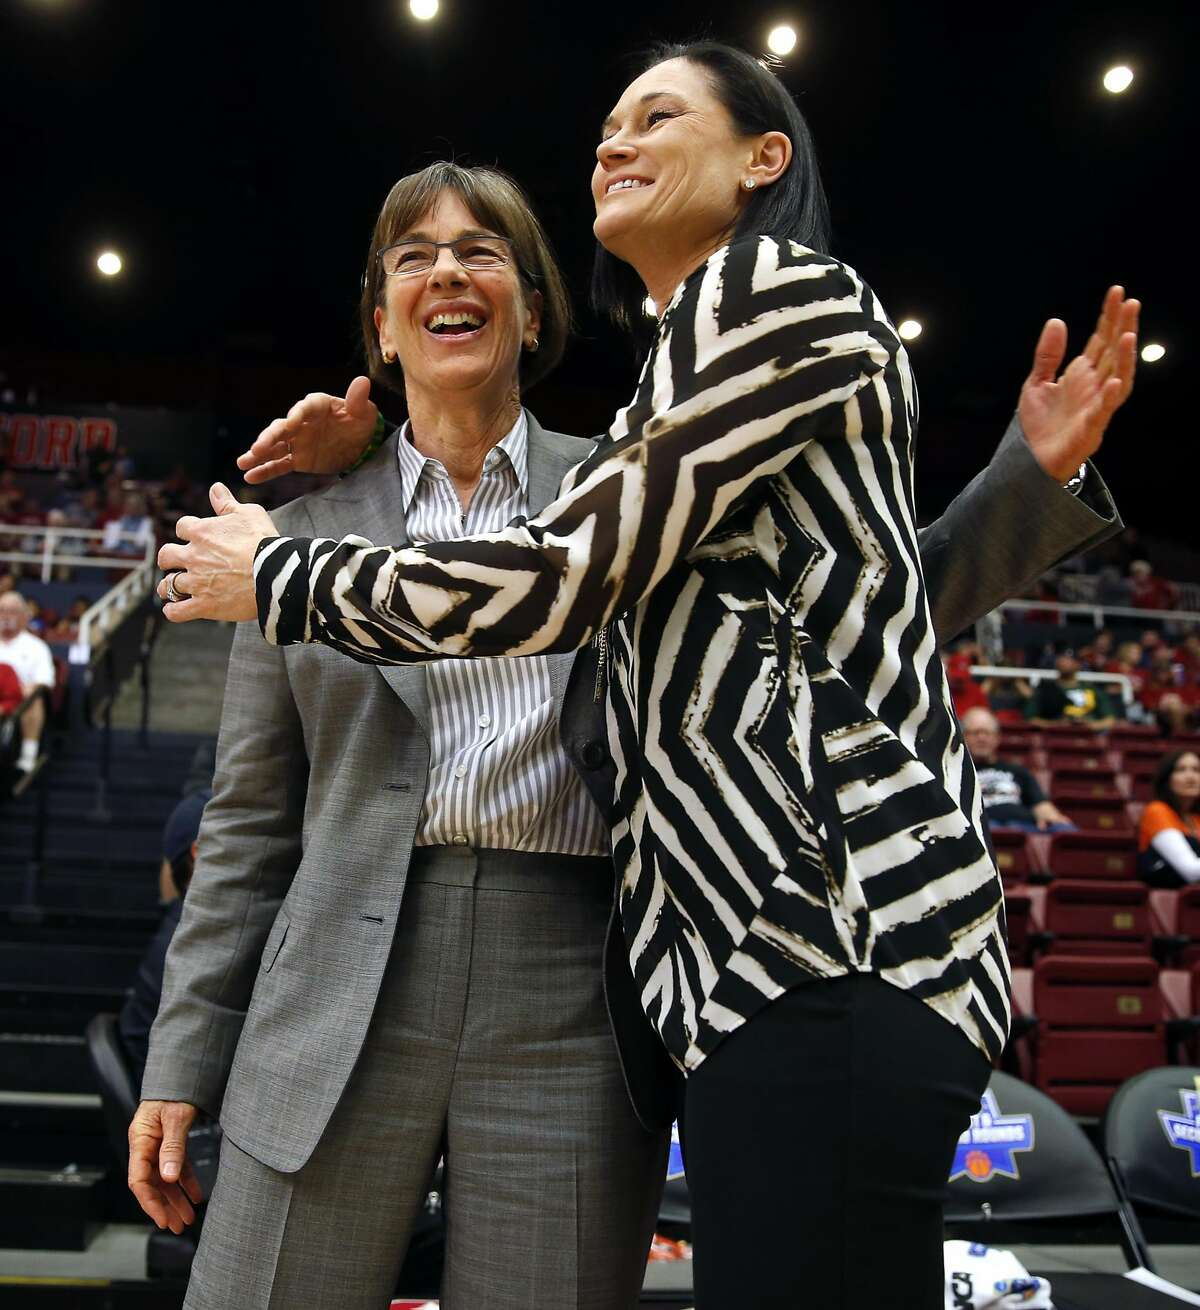 Stanford head coach Tara VanDerveer (left) and San Francisco head coach Jennifer Azzi embrace before their team's faced off during 2016 NCAA Division 1 Women's Basketball Tournament game at Maples Pavilion in Stanford, Calif., on Saturday, March 19, 2016.